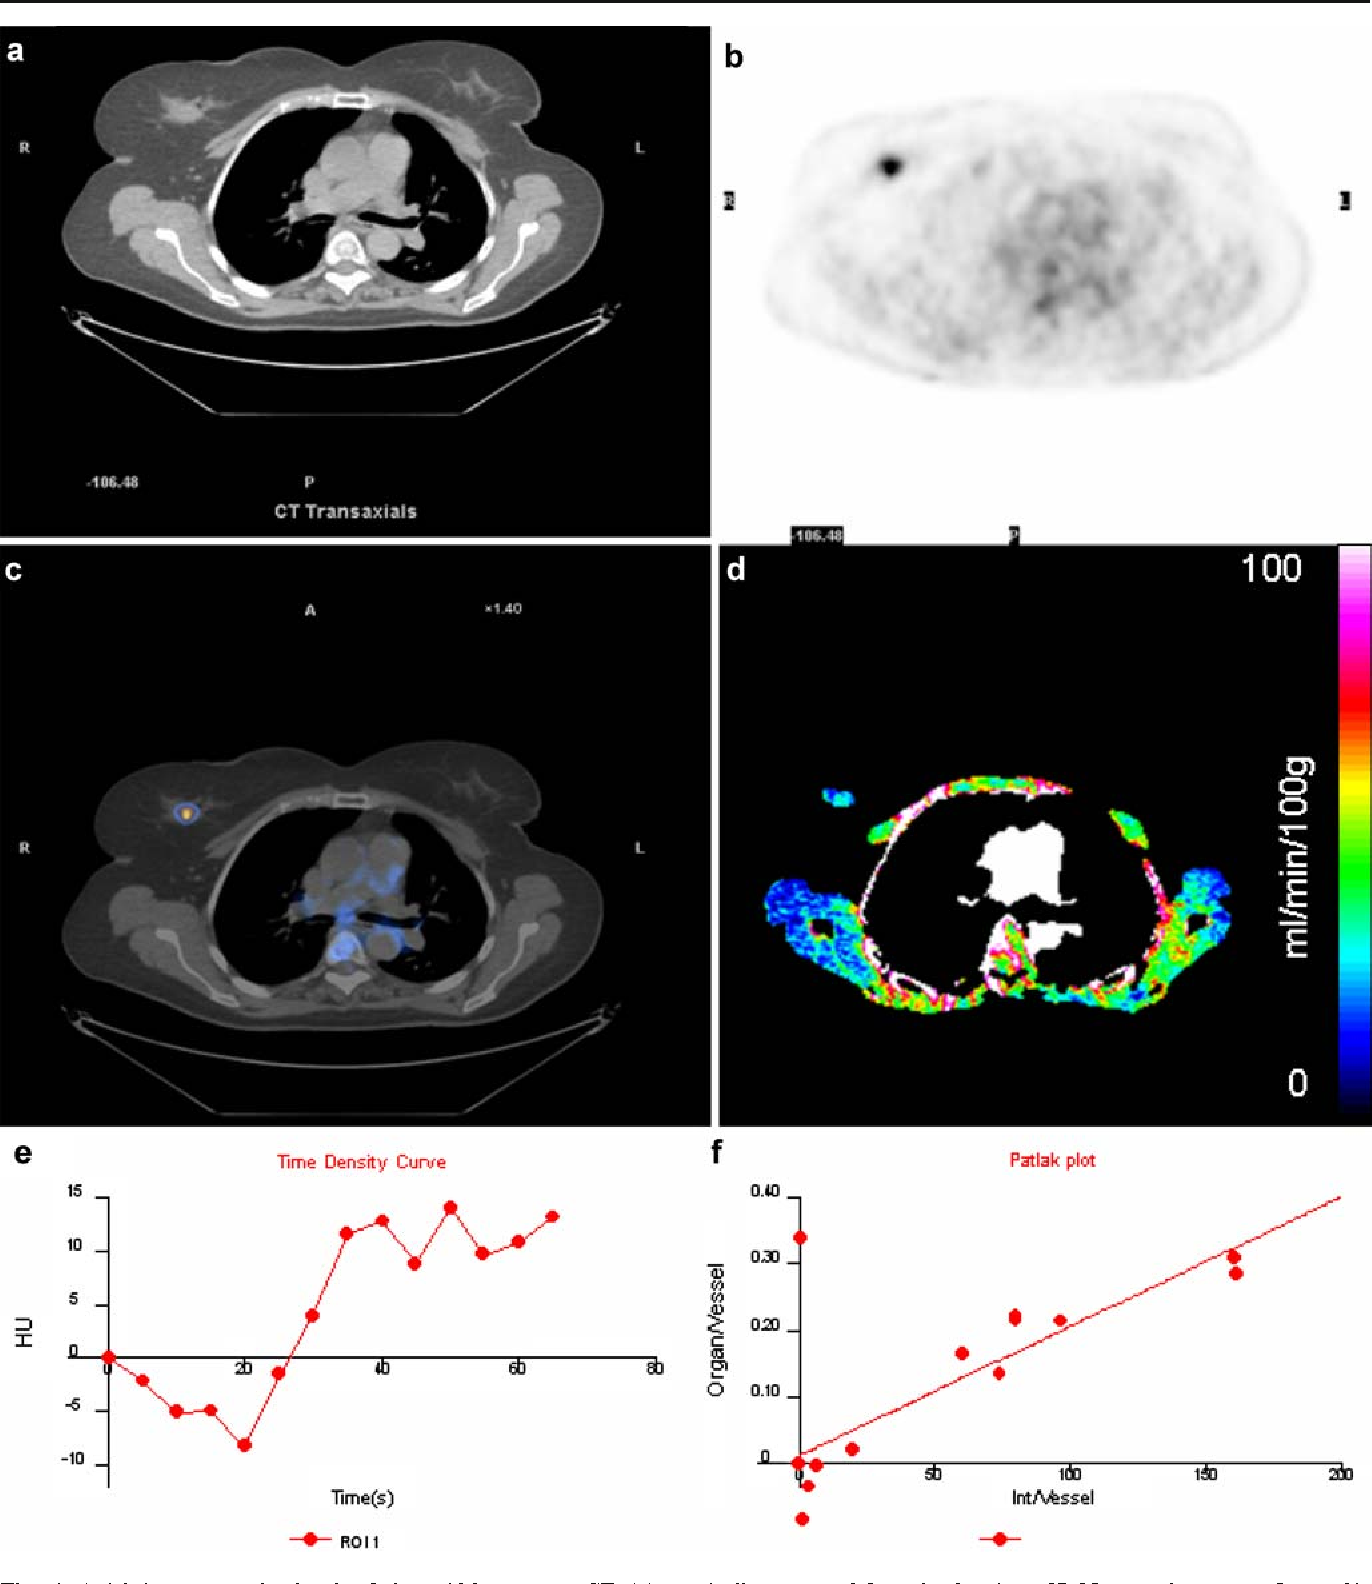 Fig. 1 Axial images at the level of the mid-breast, on CT (a), coregistered 18F-FDG PET (b) and fused PET/CT (c) show a 18FFDG-avid carcinoma in the right breast. Image d, derived from the DCE-CT shows the same tumour as part of a colour parametric perfusion map. Image e shows the time enhancement curve automat-